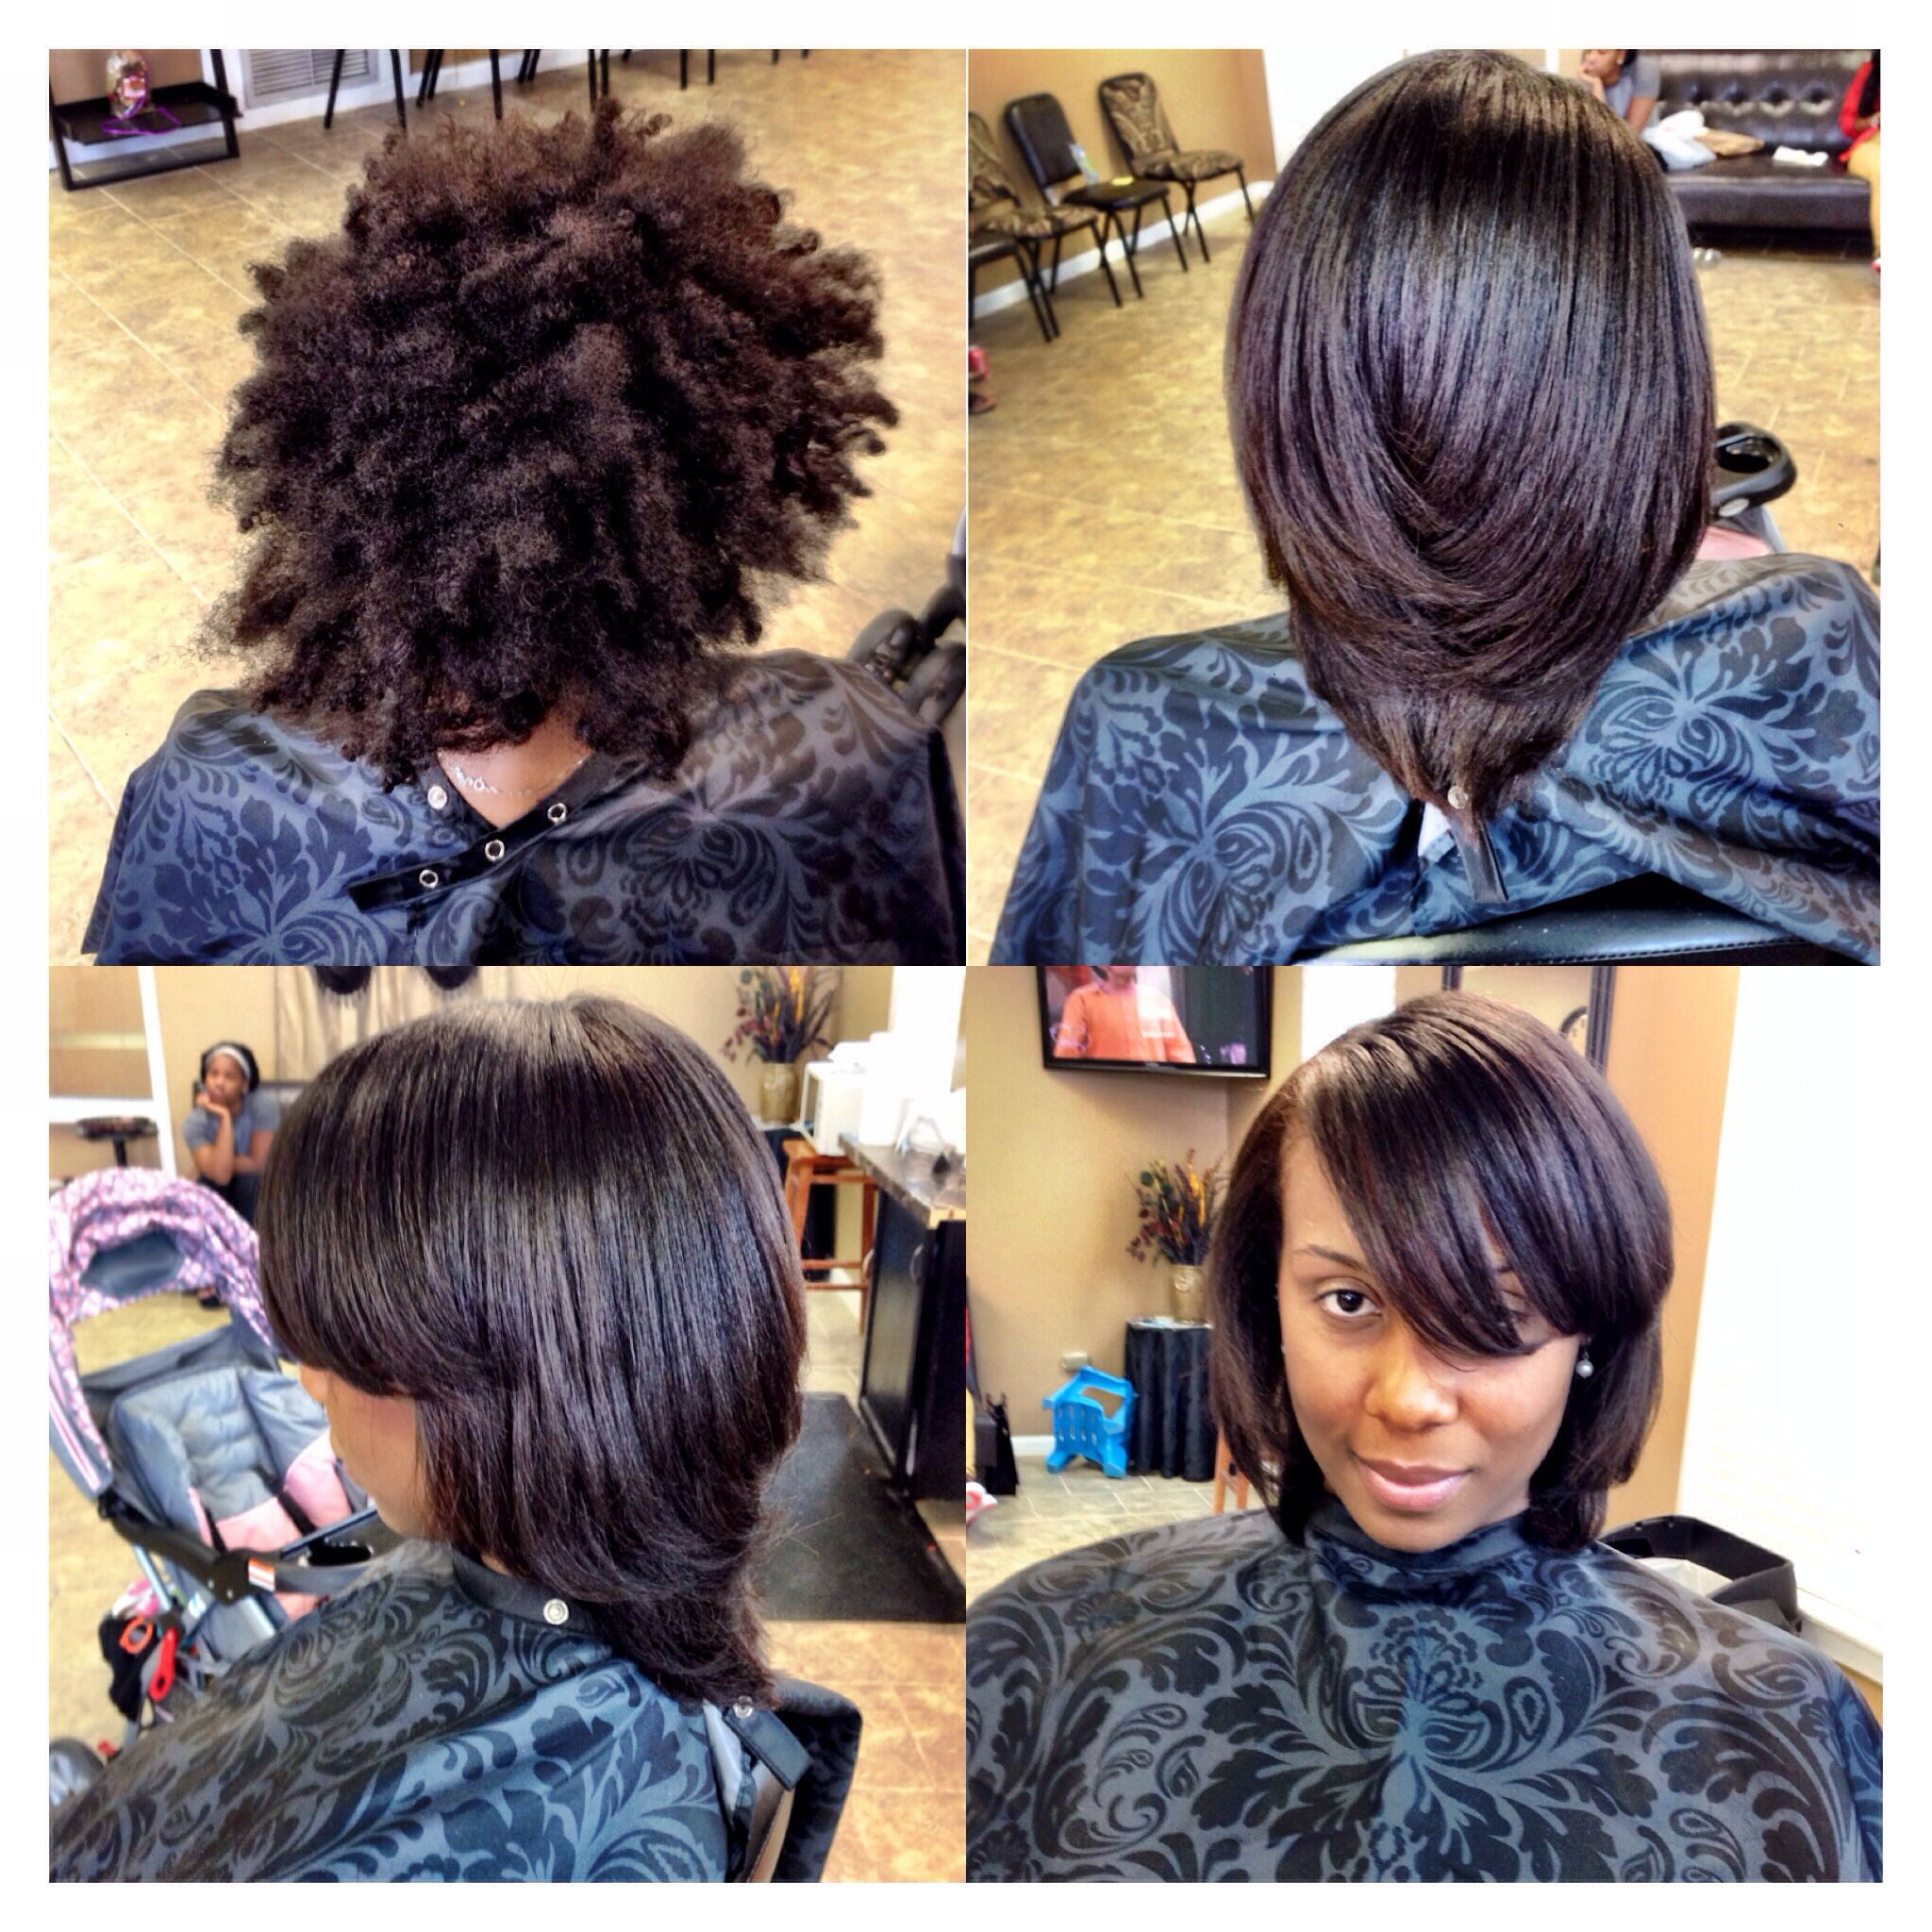 hair natural short silk press blowout hairstyles blow african american styles hairstyle curled curls teen uploaded user